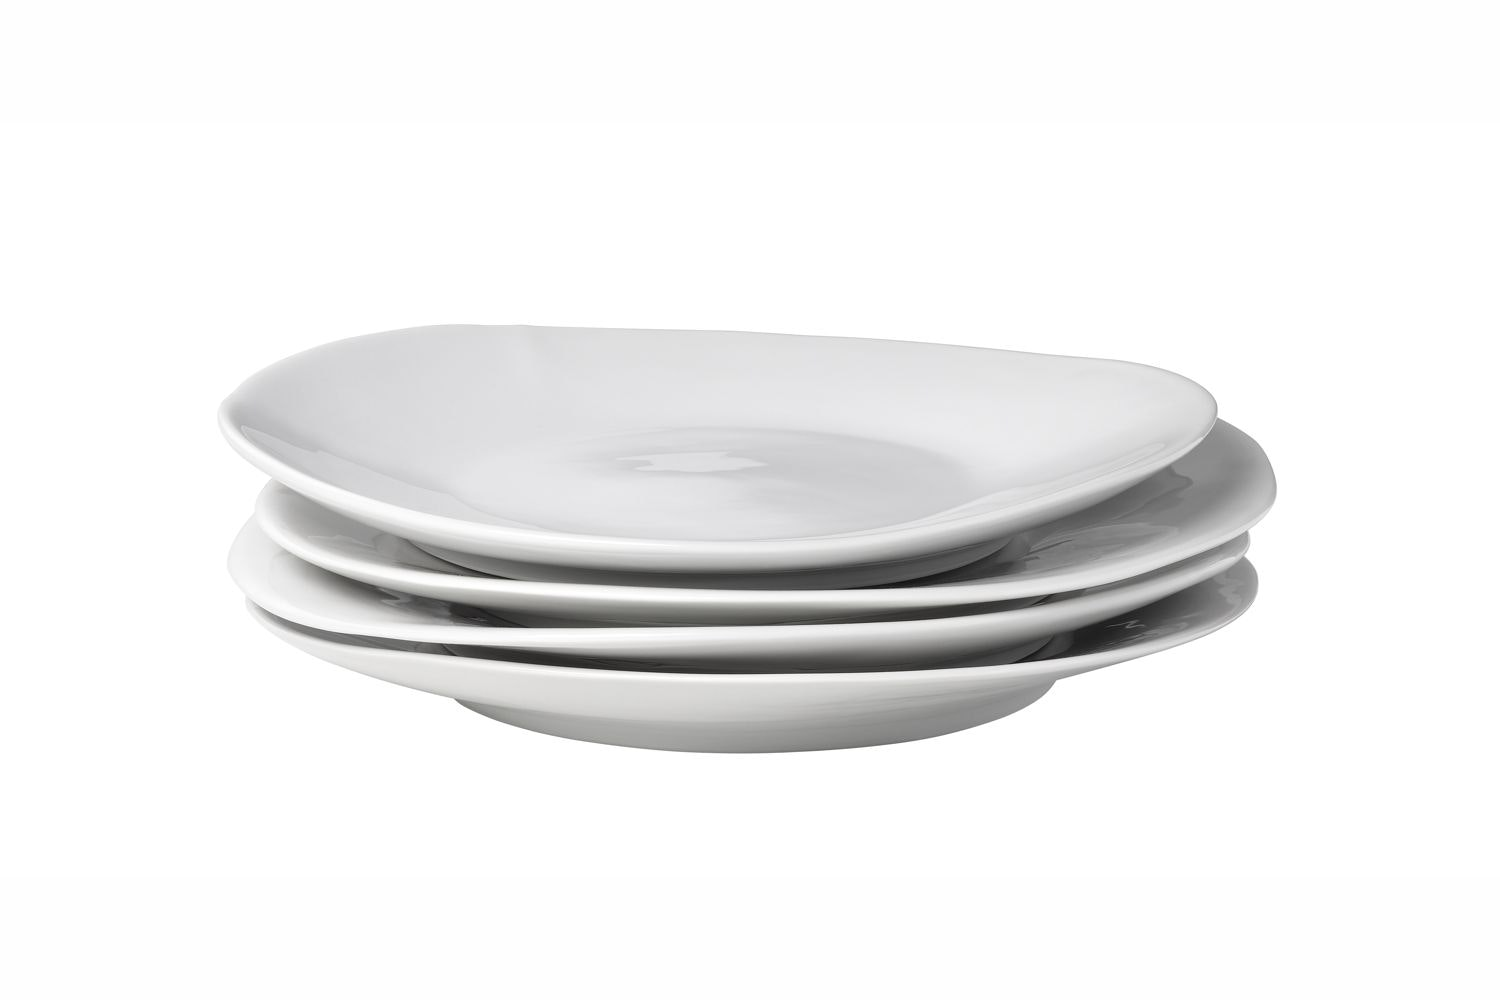 Small Famished Plate by Tse & Tse